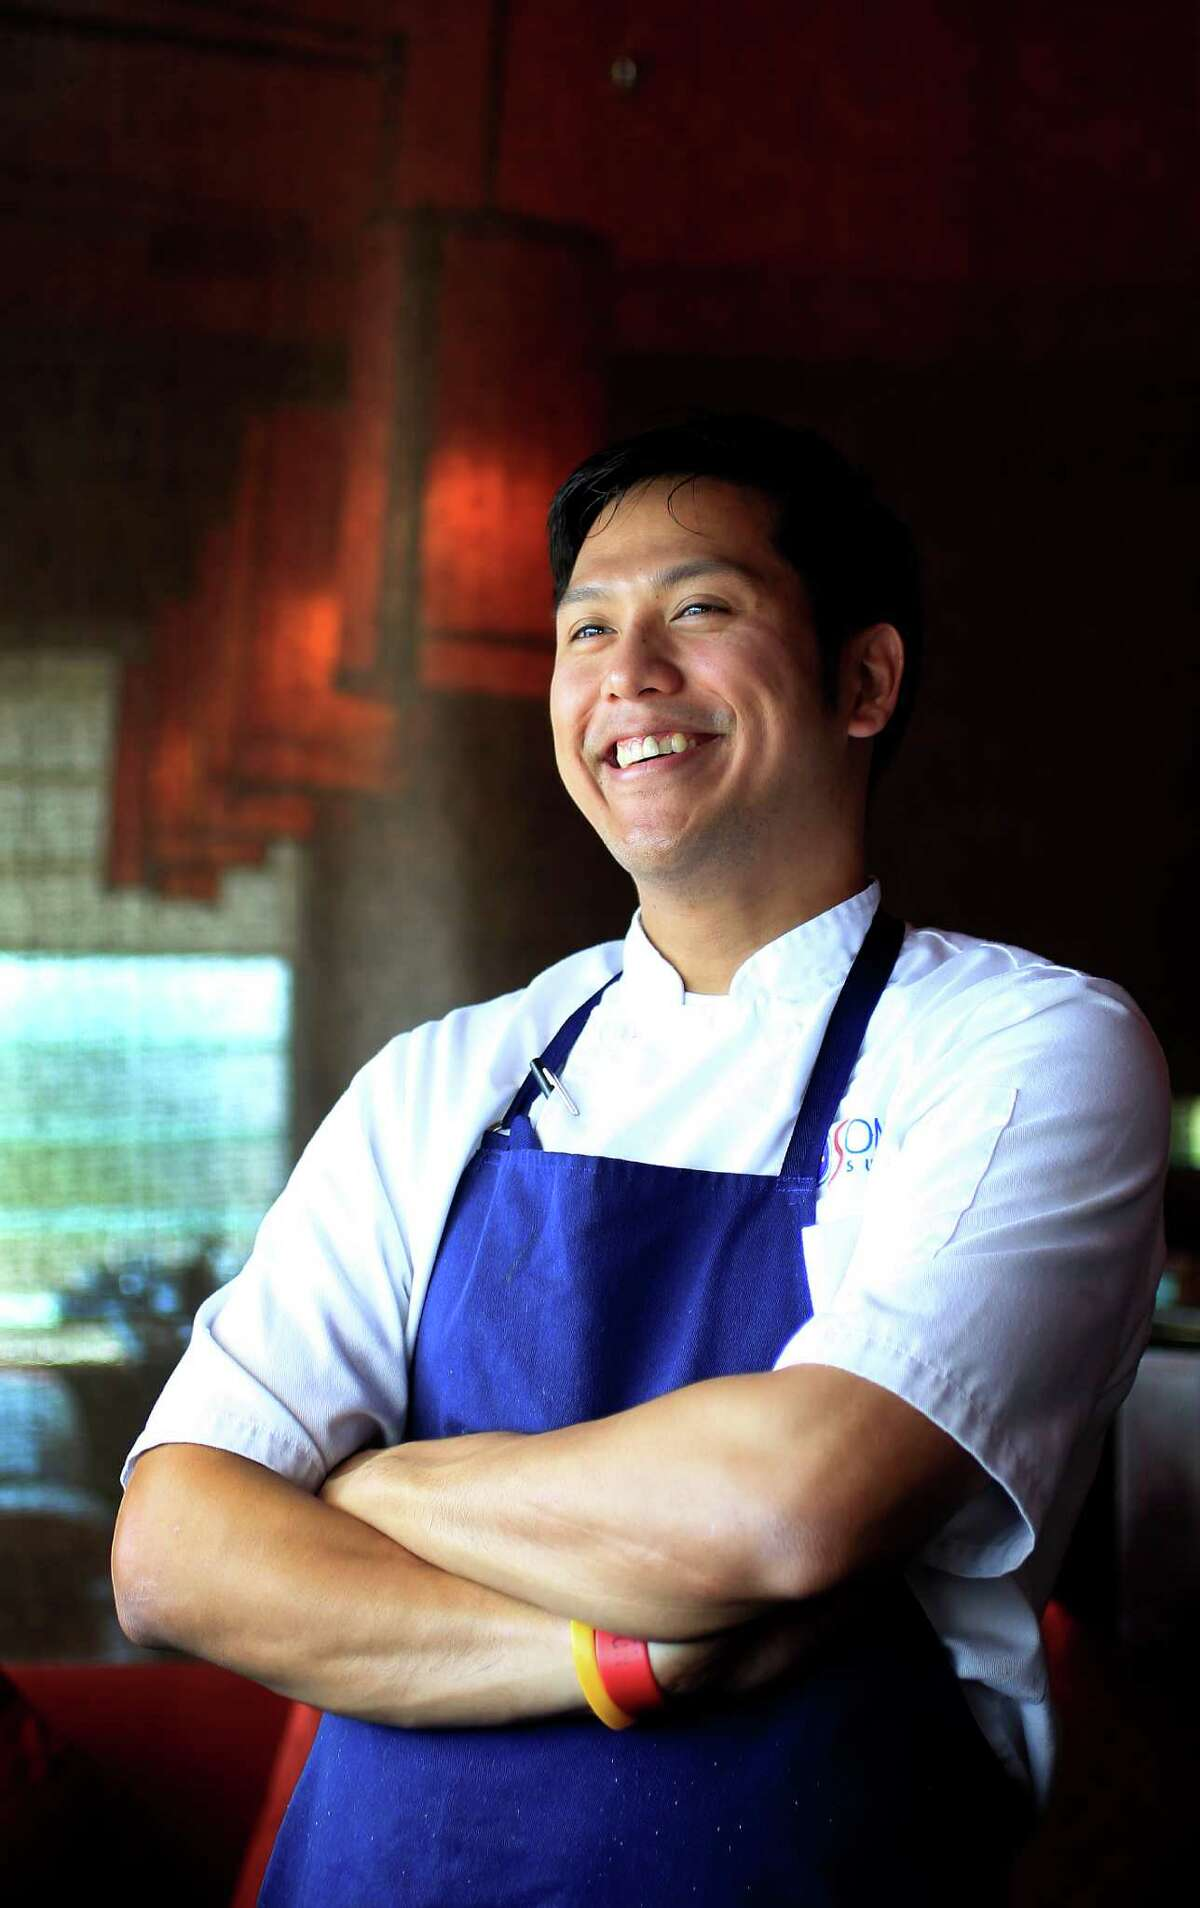 Soma Sushi co-executive chef Mark Gabriel Medina says he likes creating food that's comforting and influenced by the South, using local ingredients whenever possible.